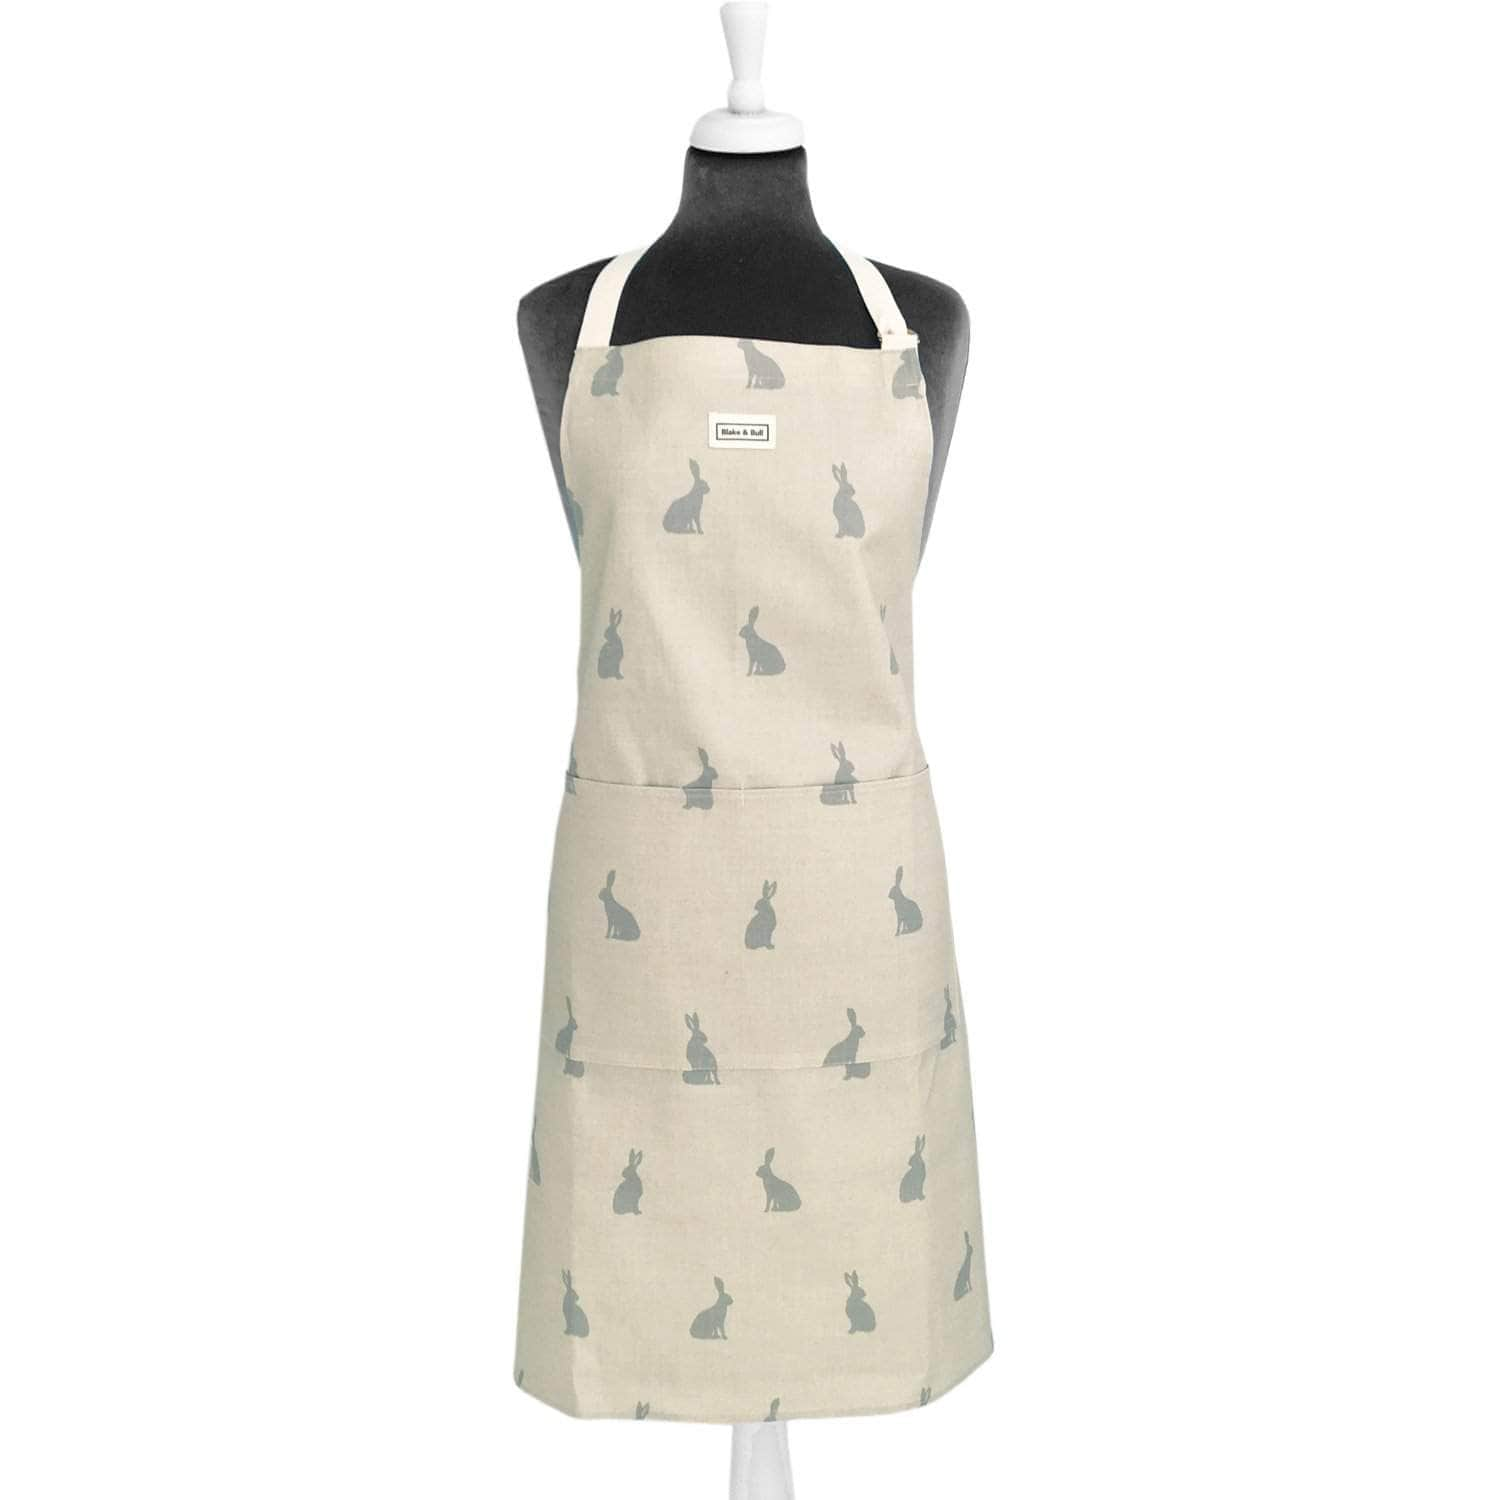 *Not quite perfect* Apron - 'Hare today'